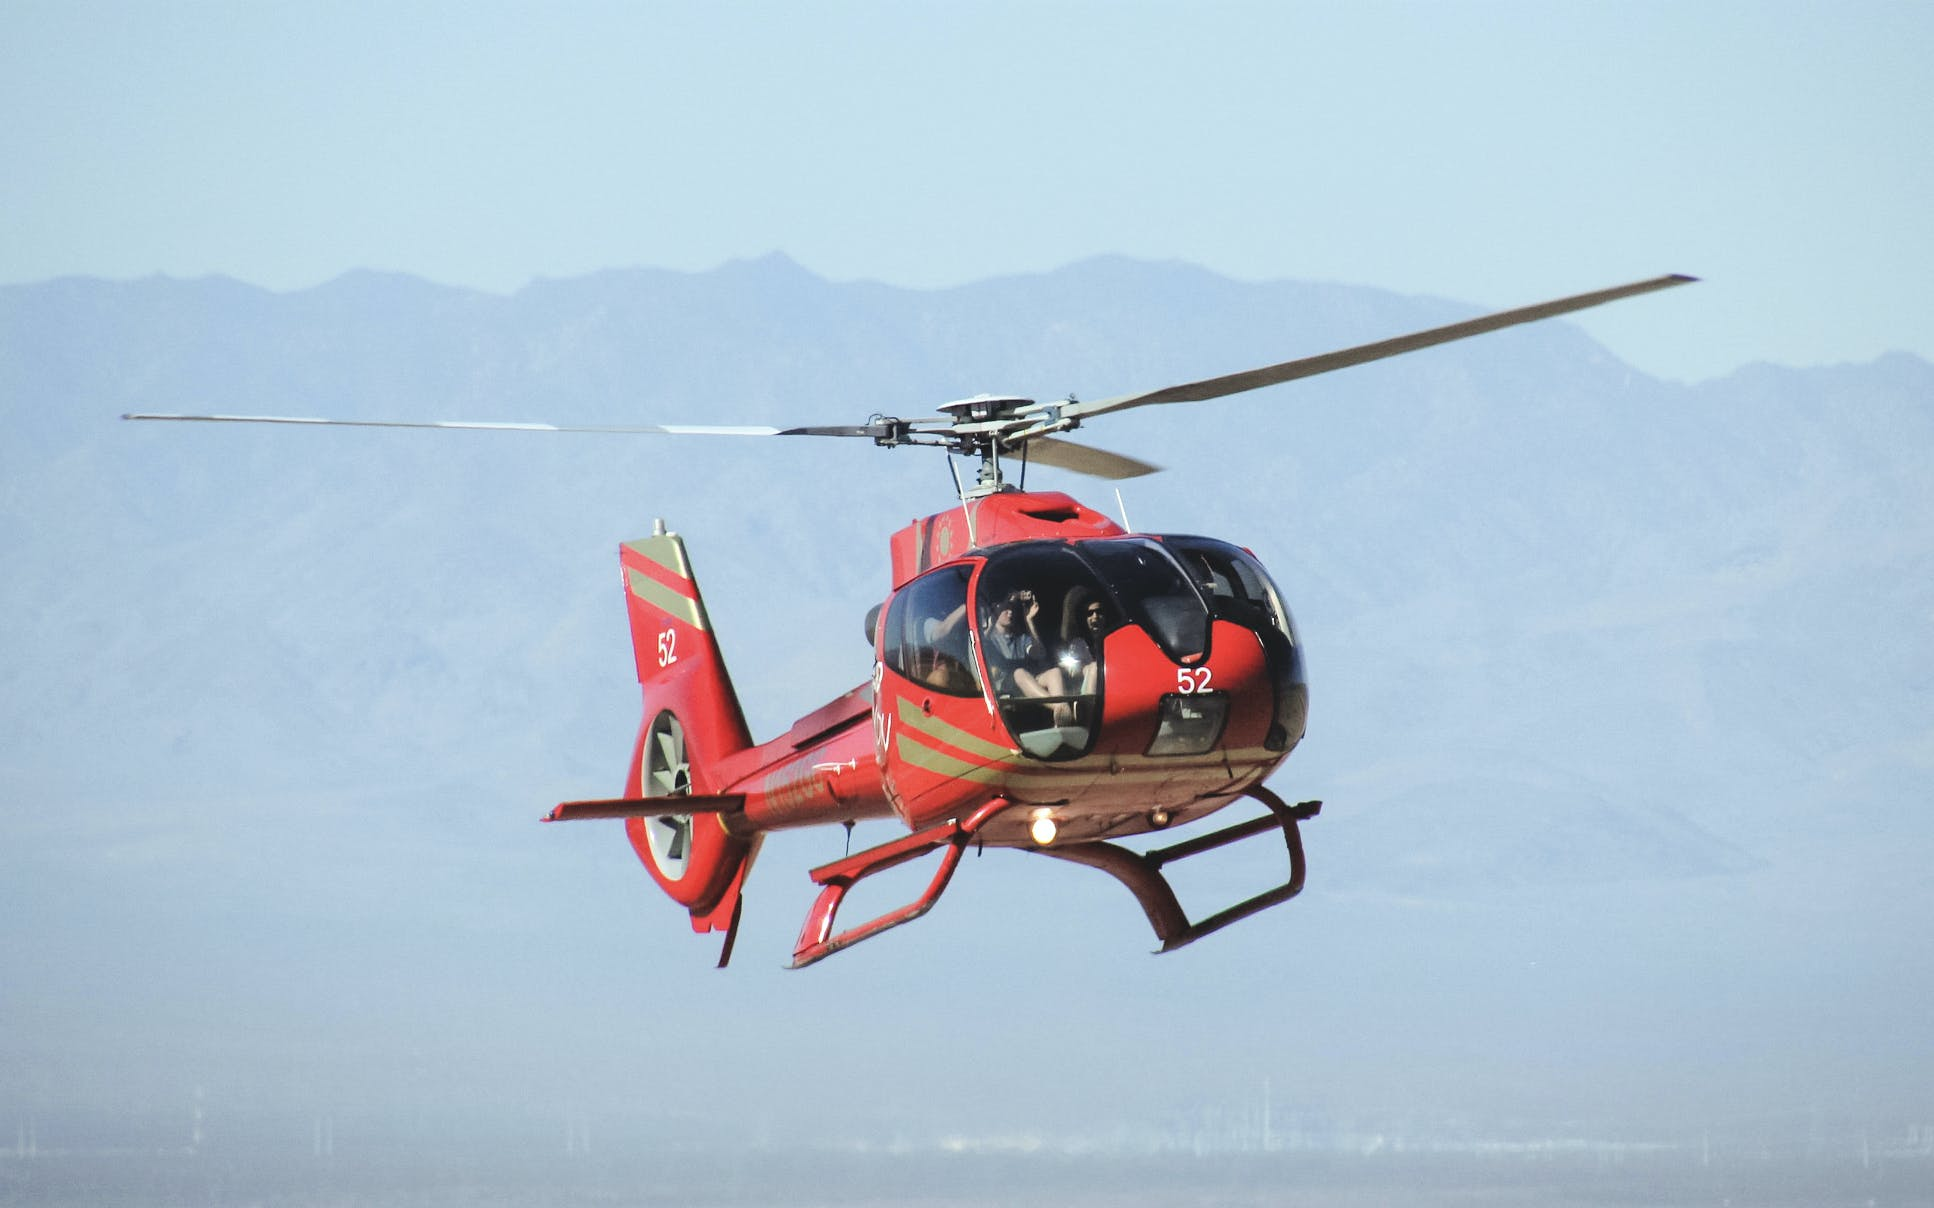 Grand Canyon North Rim Helicopter Tour with Optional Jeep Excursion (Self-Drive)